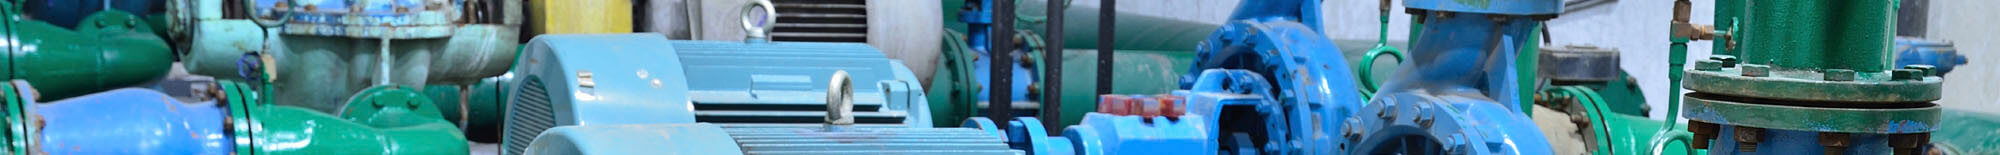 Santa Barbara Industrial Pump Service & Repair